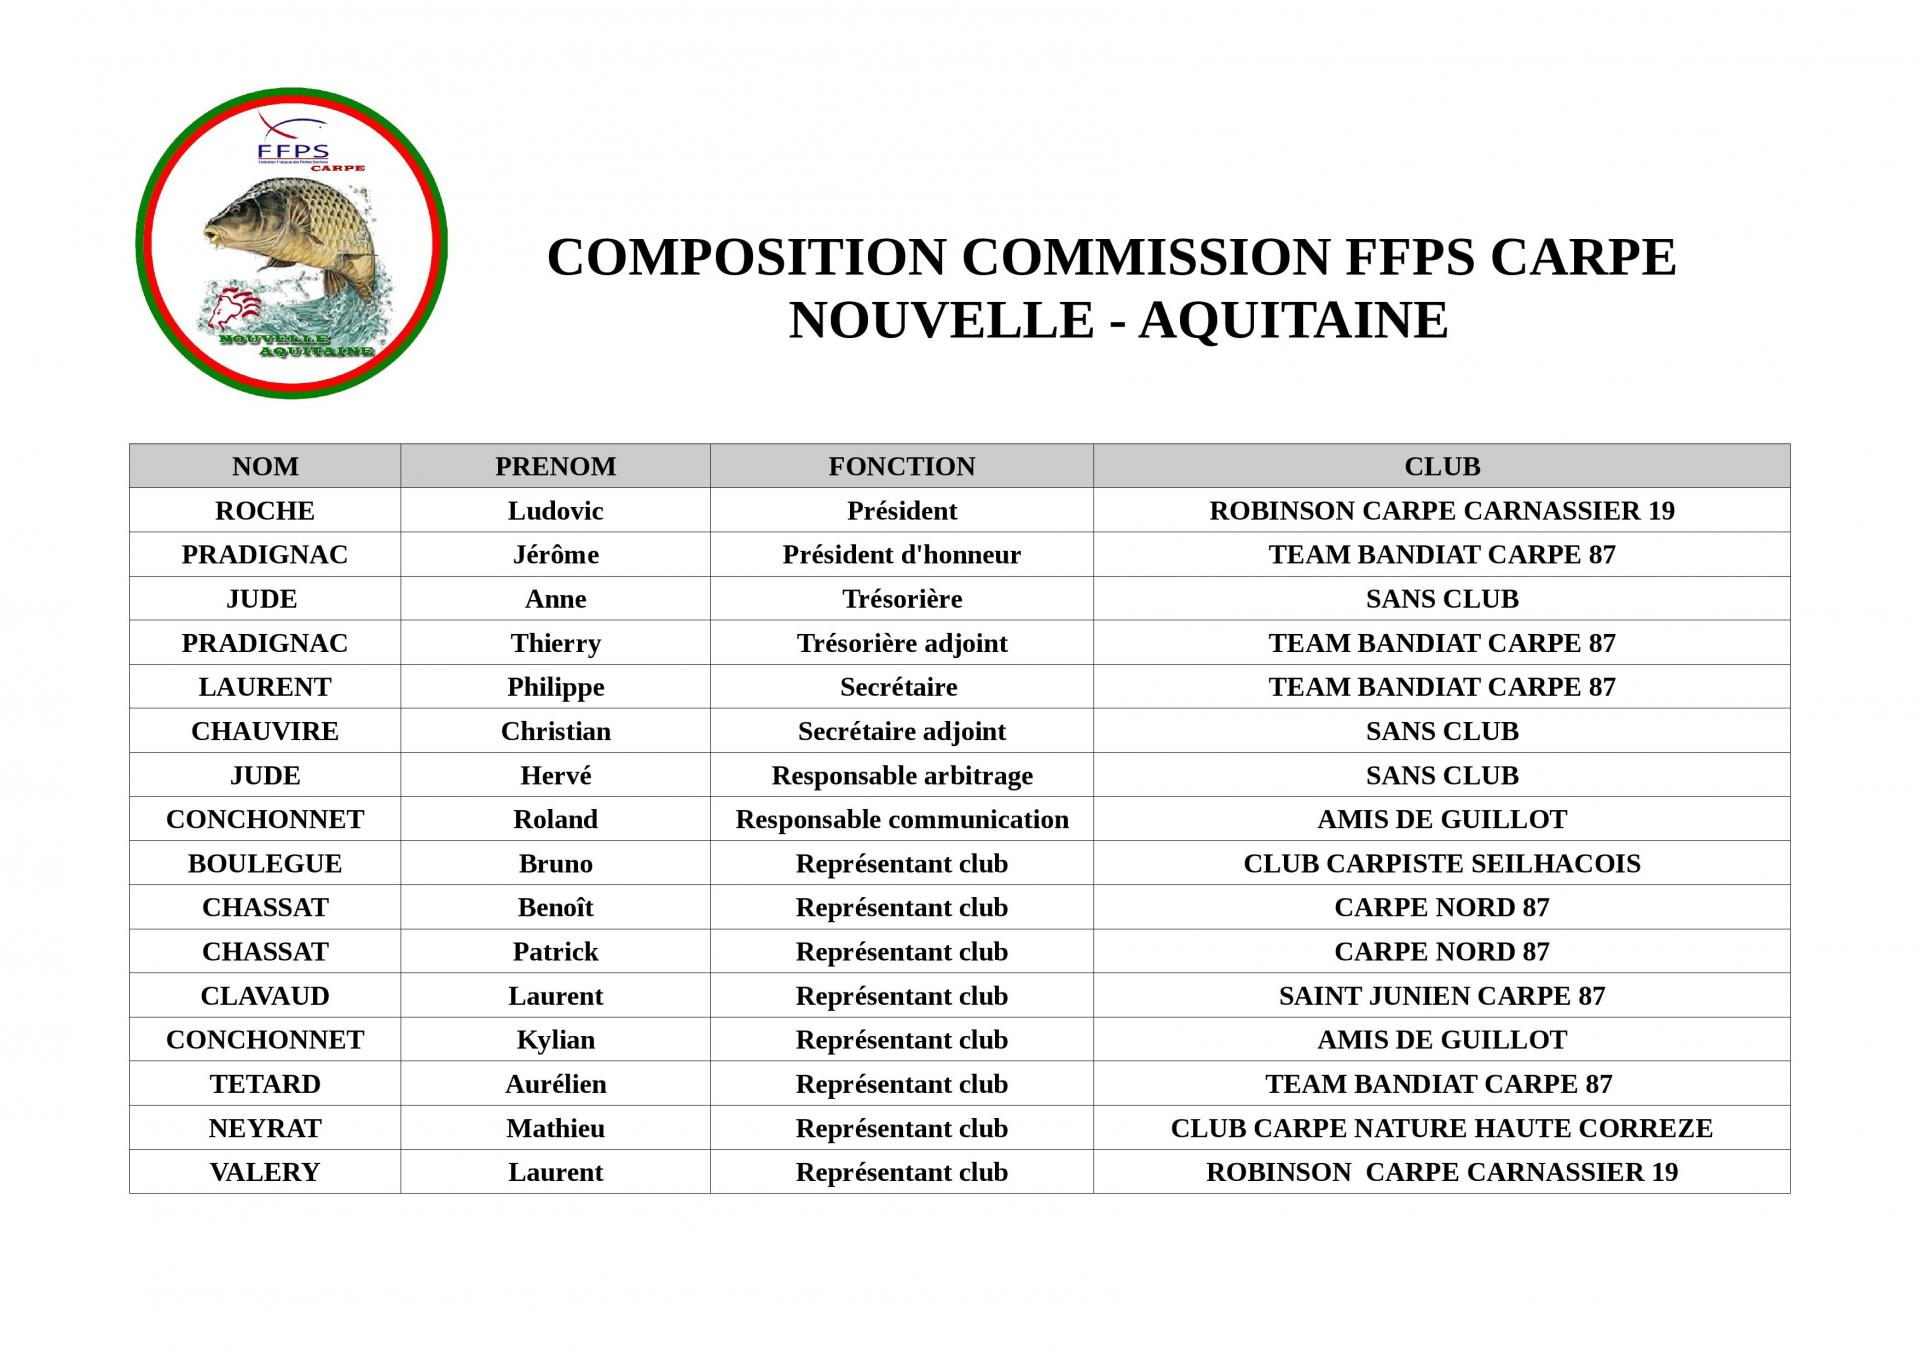 Composition commission ffps carpe club